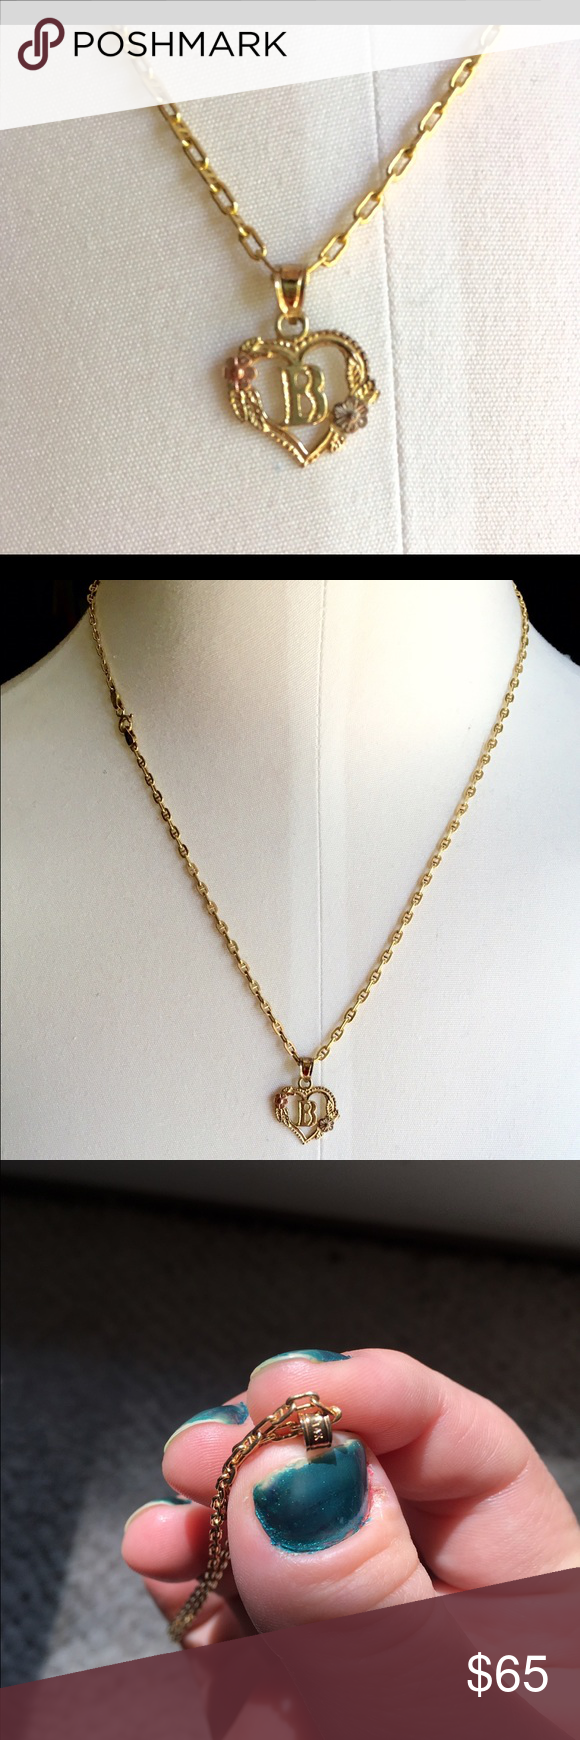 Beverly Hills Gold 14k B Initial Heart Necklace Beverly hills